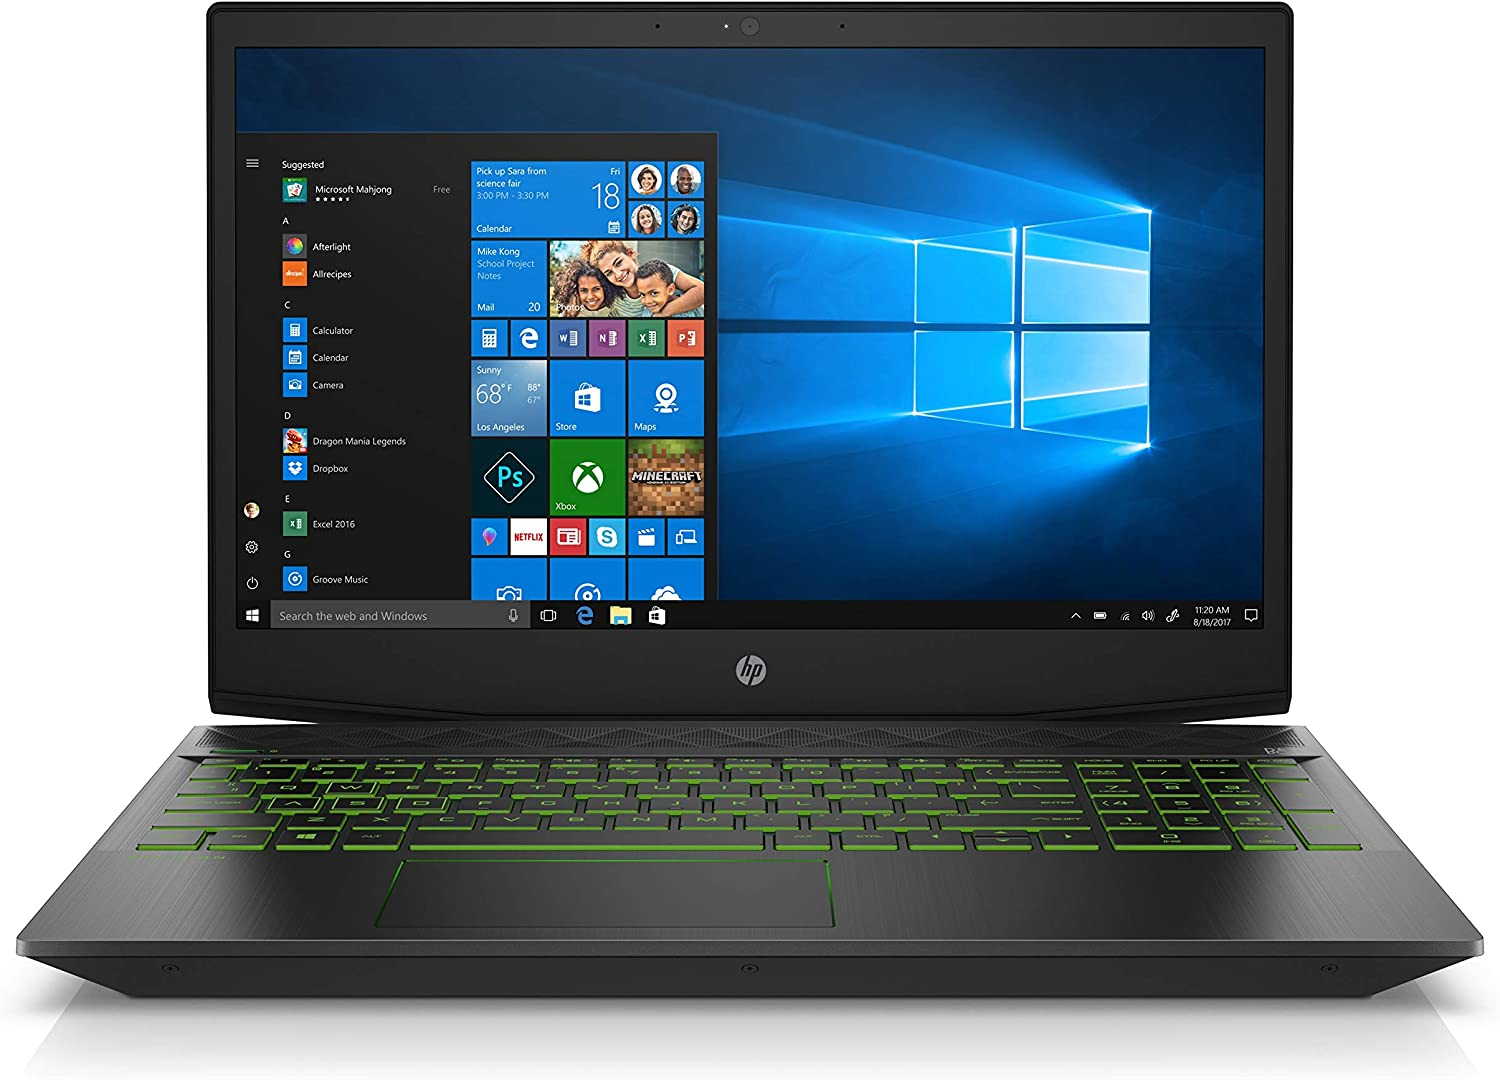 HP Pavilion 15-cx0058wm 15.6in Gaming Notebook - Intel Core i5-8300H, NVIDIA GeForce GTX 1050 4GB GPU, 8GB RAM, 16 GB Intel Optane + 1TB HDD Storage, Windows 10 (Renewed)